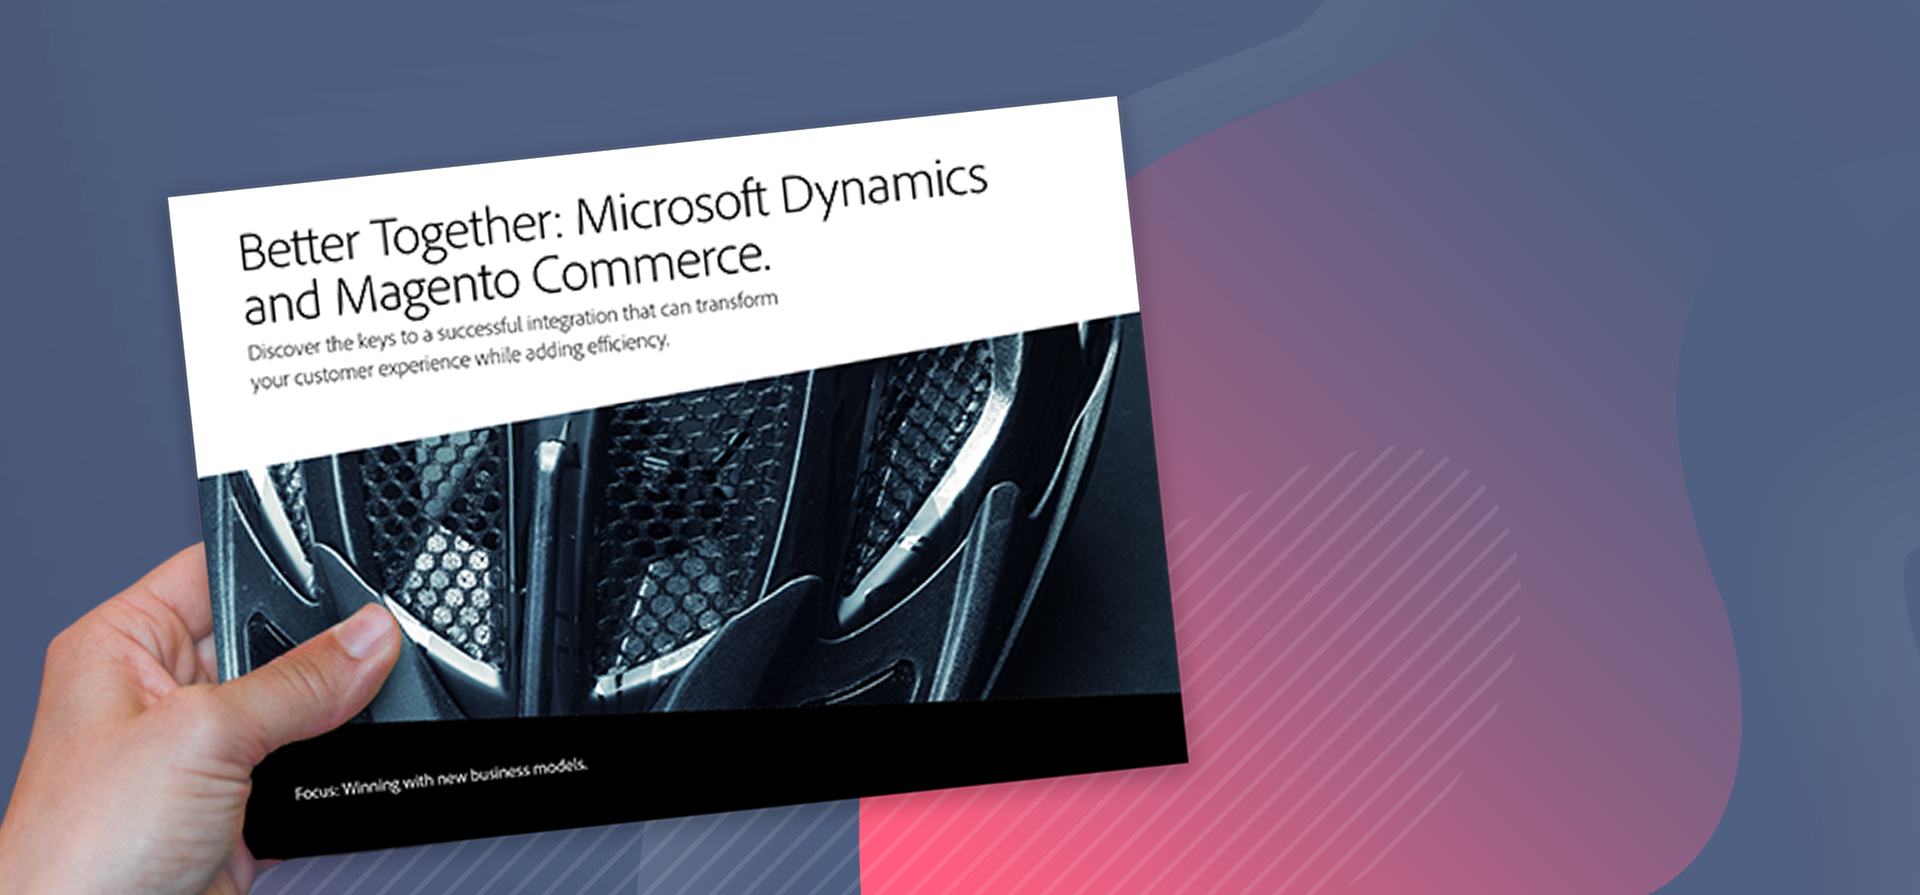 Microsoft Dynamics and Magento Commerce: A perfect omnichannel pairing